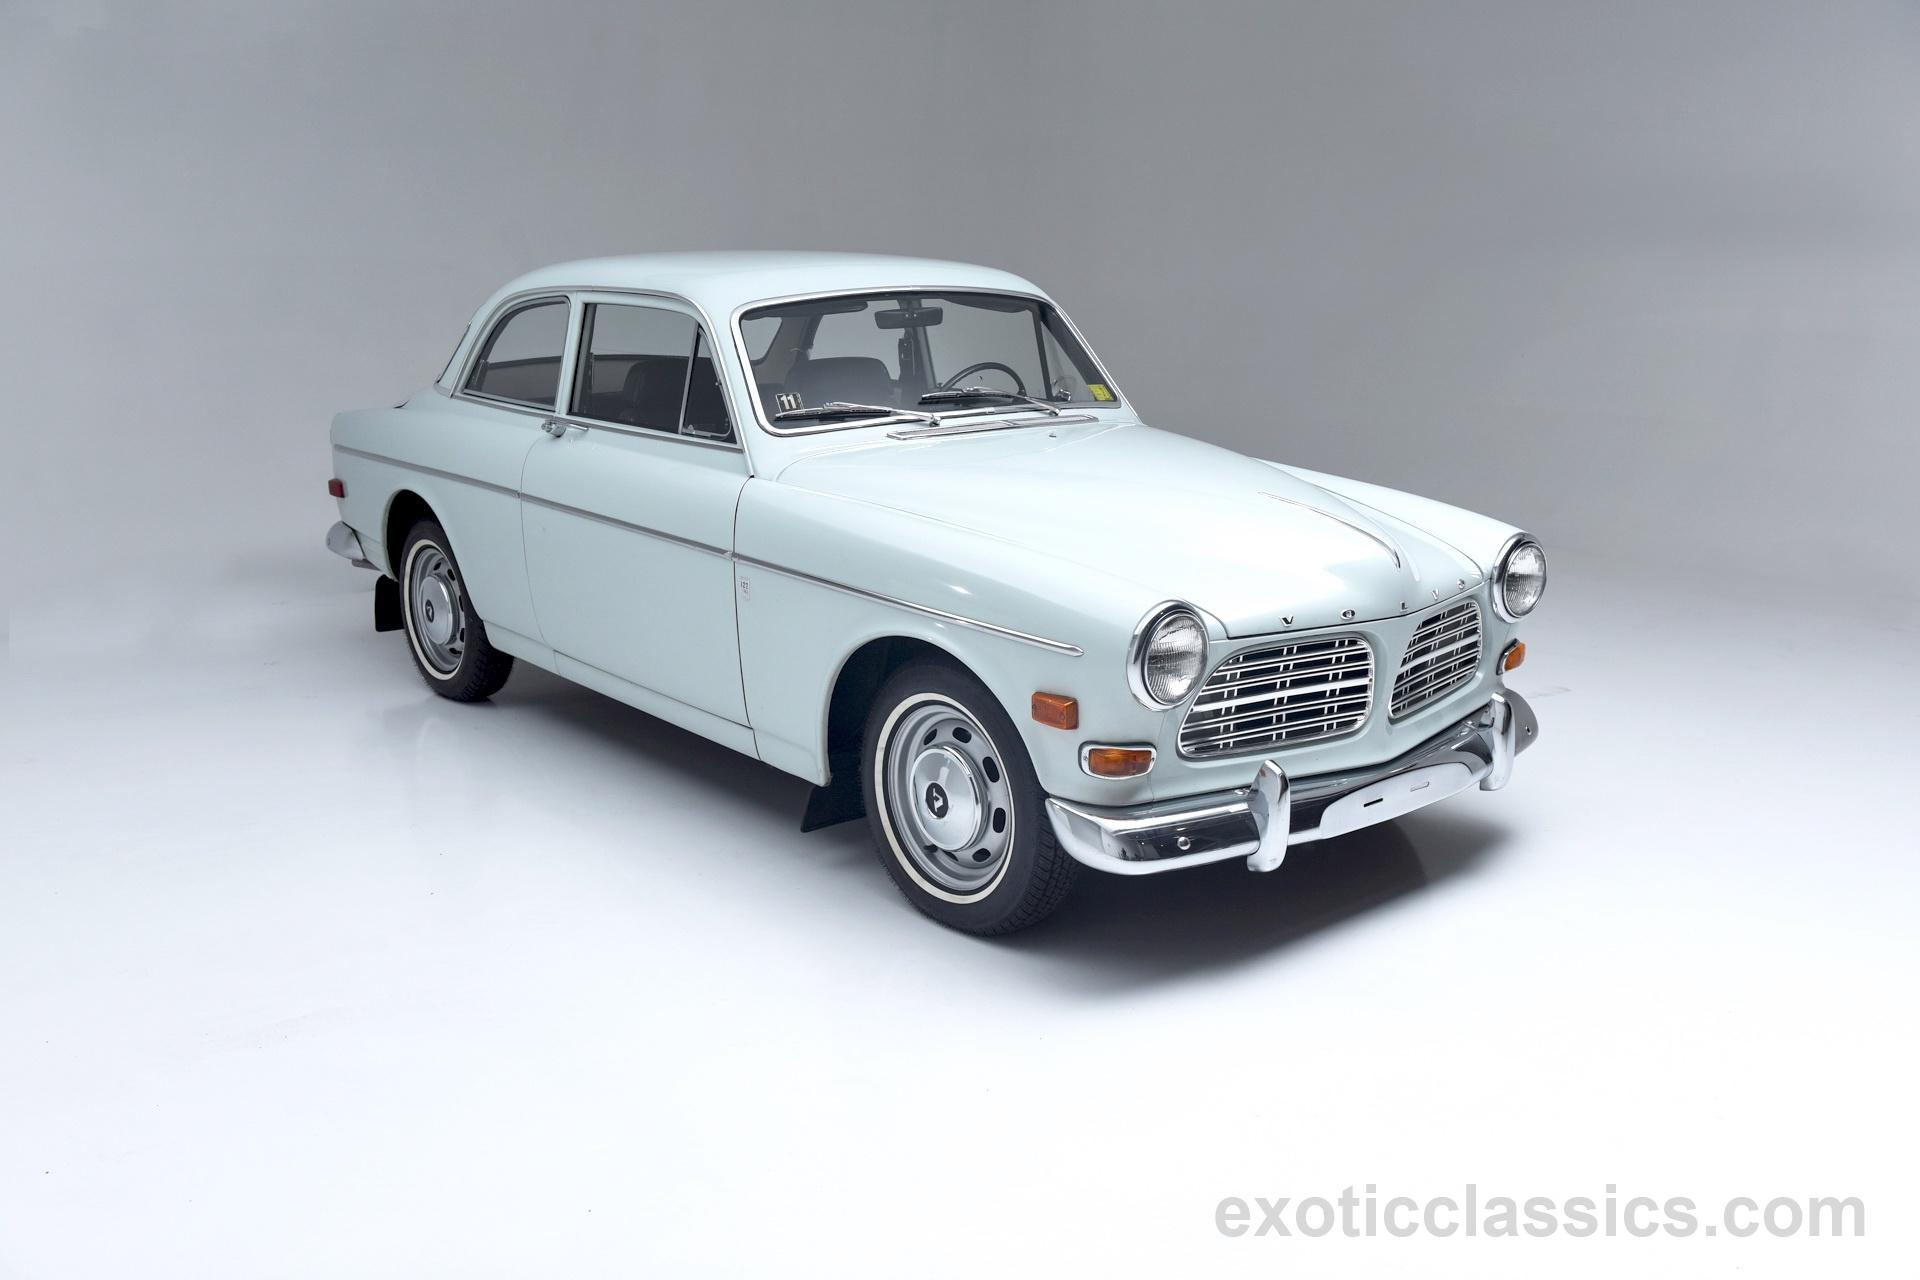 1968 Volvo 122 - Exotic and Classic Car Dealership specializing in ...